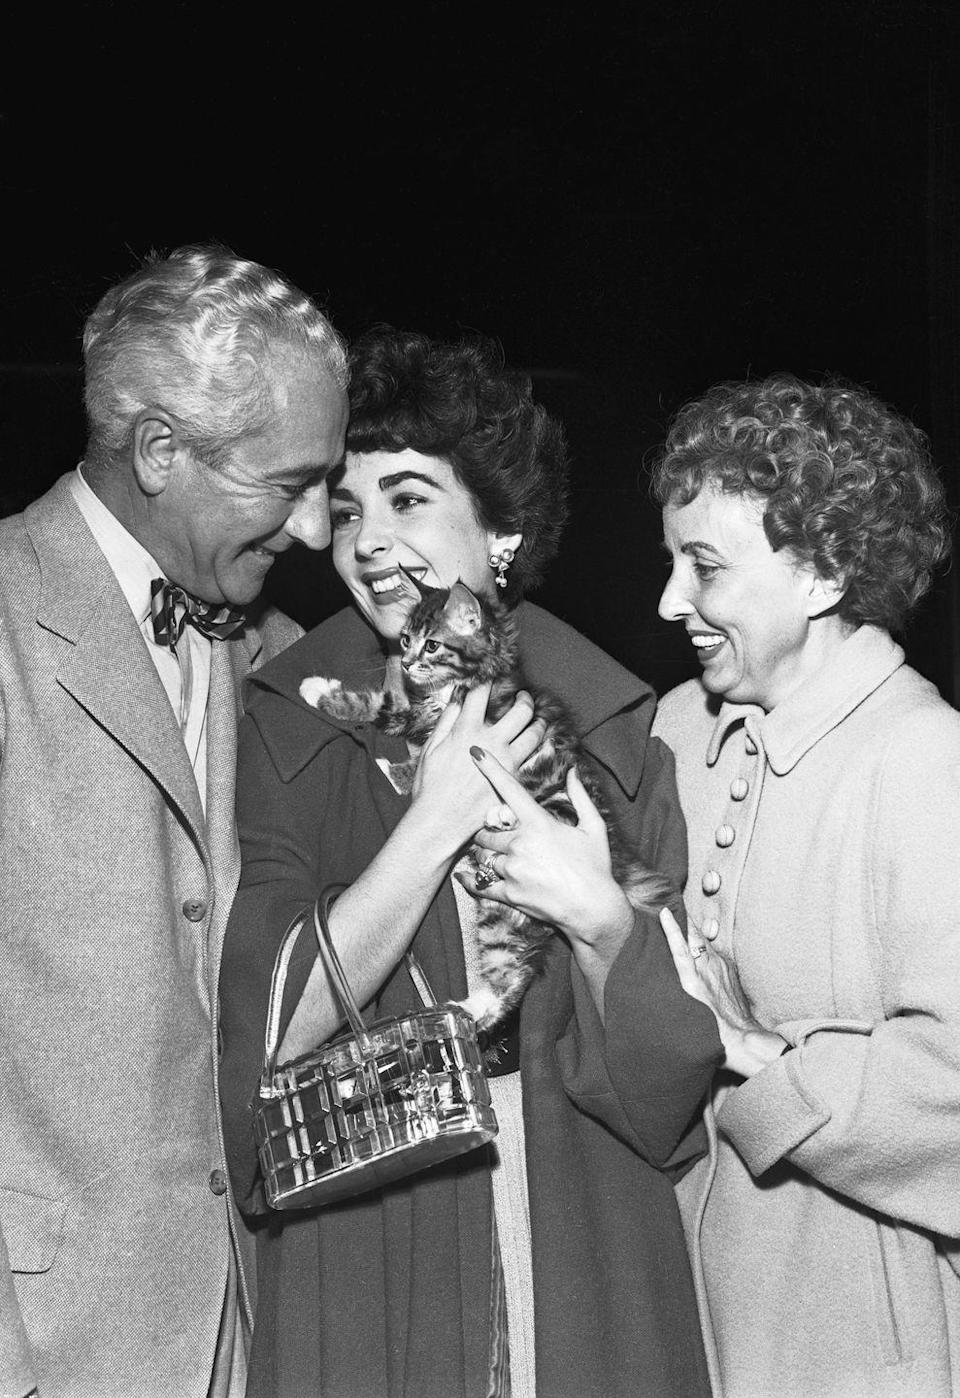 """<p>Upon returning home from her six-month stay in London, Elizabeth Taylor met her parents at the airport to reveal her new tiny kitten, Tailspin. However, the actress's new pet wasn't the only new addition to her household: Elizabeth <a href=""""https://economictimes.indiatimes.com/magazines/panache/the-many-marriages-of-elizabeth-taylor-everything-you-wanted-to-know-about-her-seven-husbands/variety-is-the-spouse-of-life/slideshow/60070468.cms"""" rel=""""nofollow noopener"""" target=""""_blank"""" data-ylk=""""slk:married her second husband"""" class=""""link rapid-noclick-resp"""">married her second husband</a>, Michael Wilding, in London in February, 1952. </p>"""